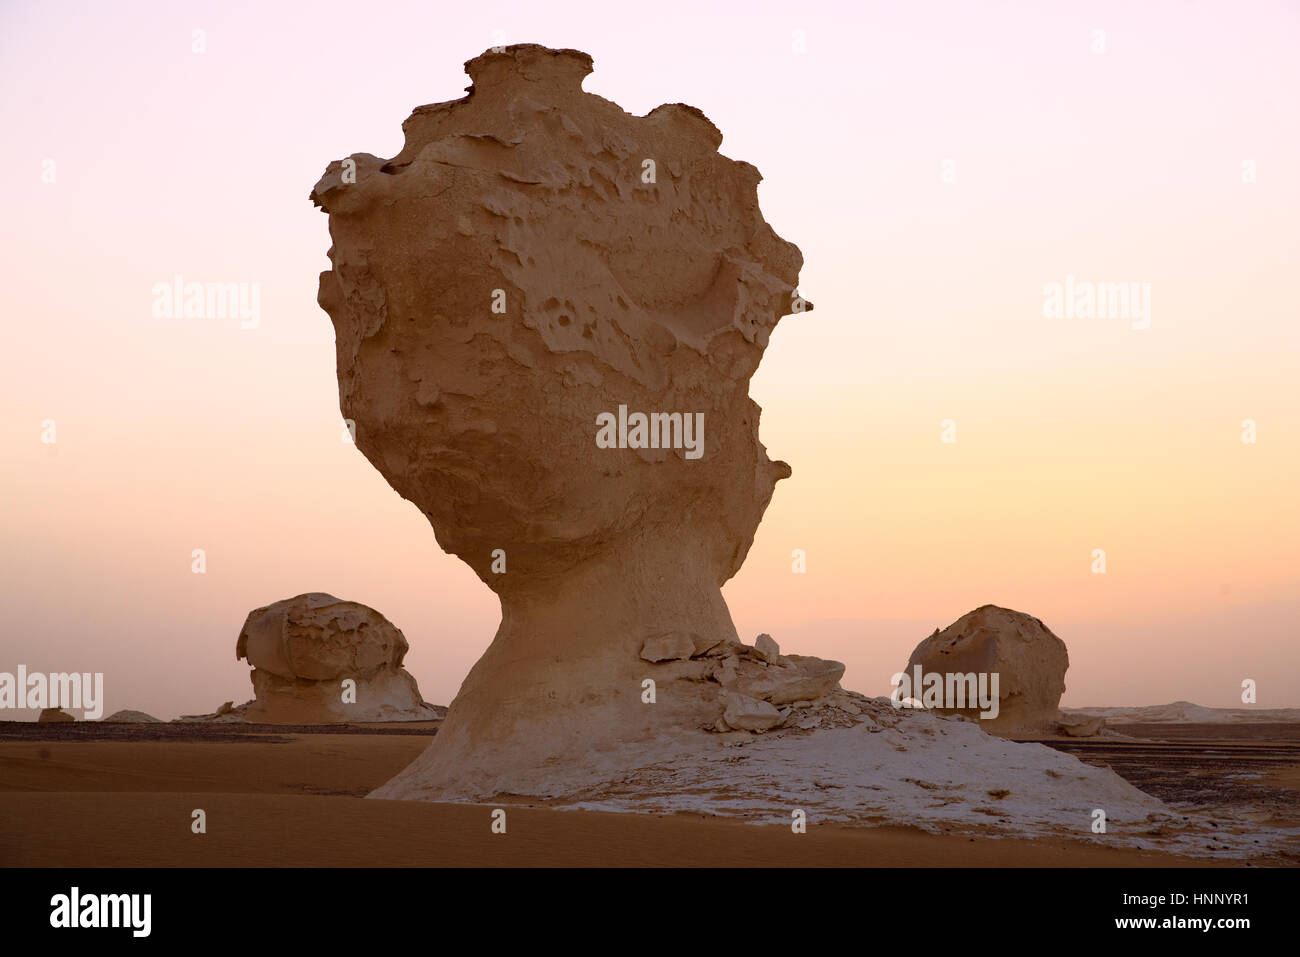 Sunrise and Sandstorn in egyptian White Desert next to oasis Baharia - Stock Image